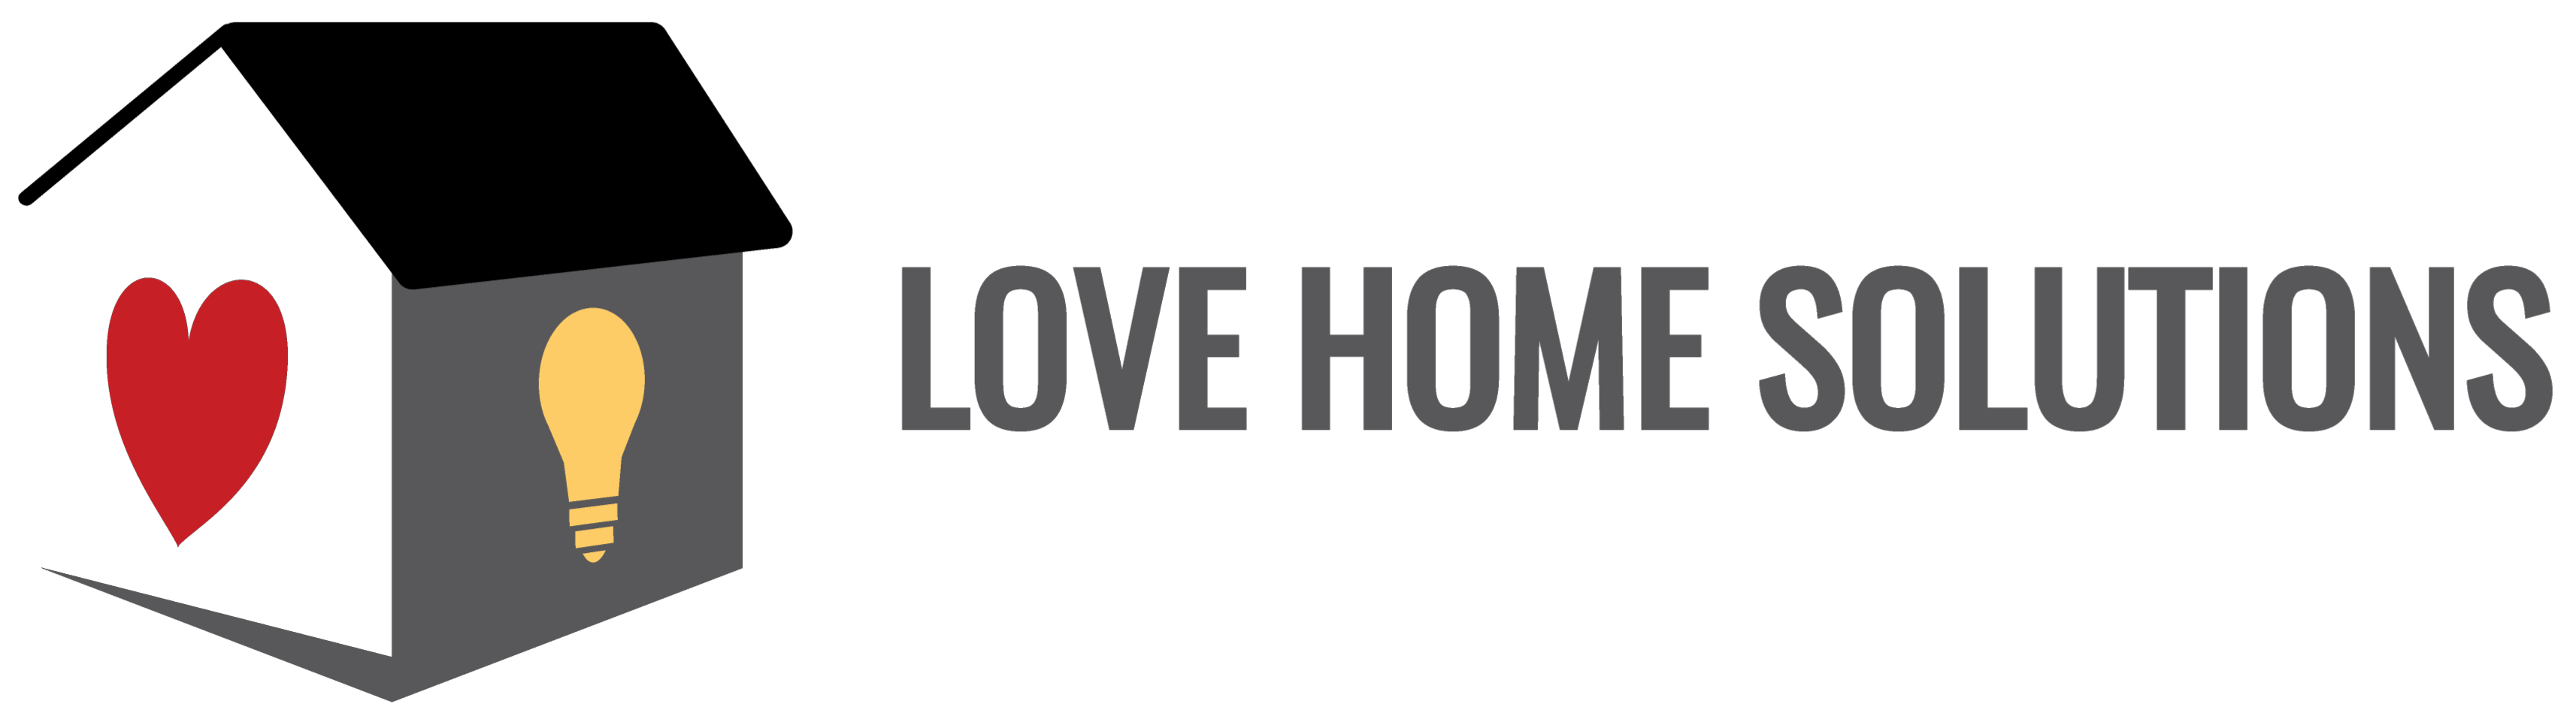 Love Home Solutions